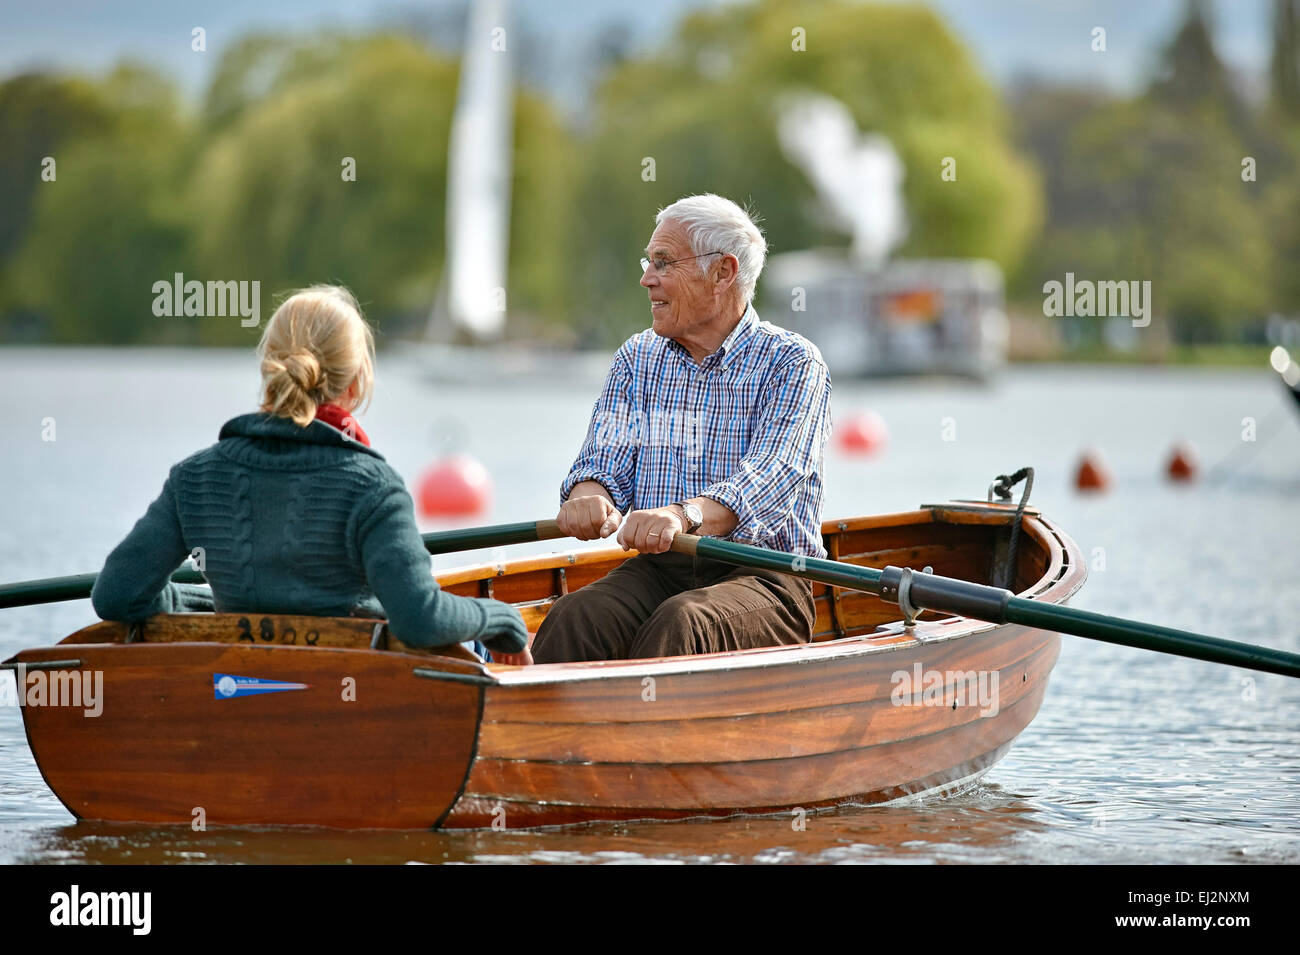 Senior and his daughter riding on a rowboat - Stock Image